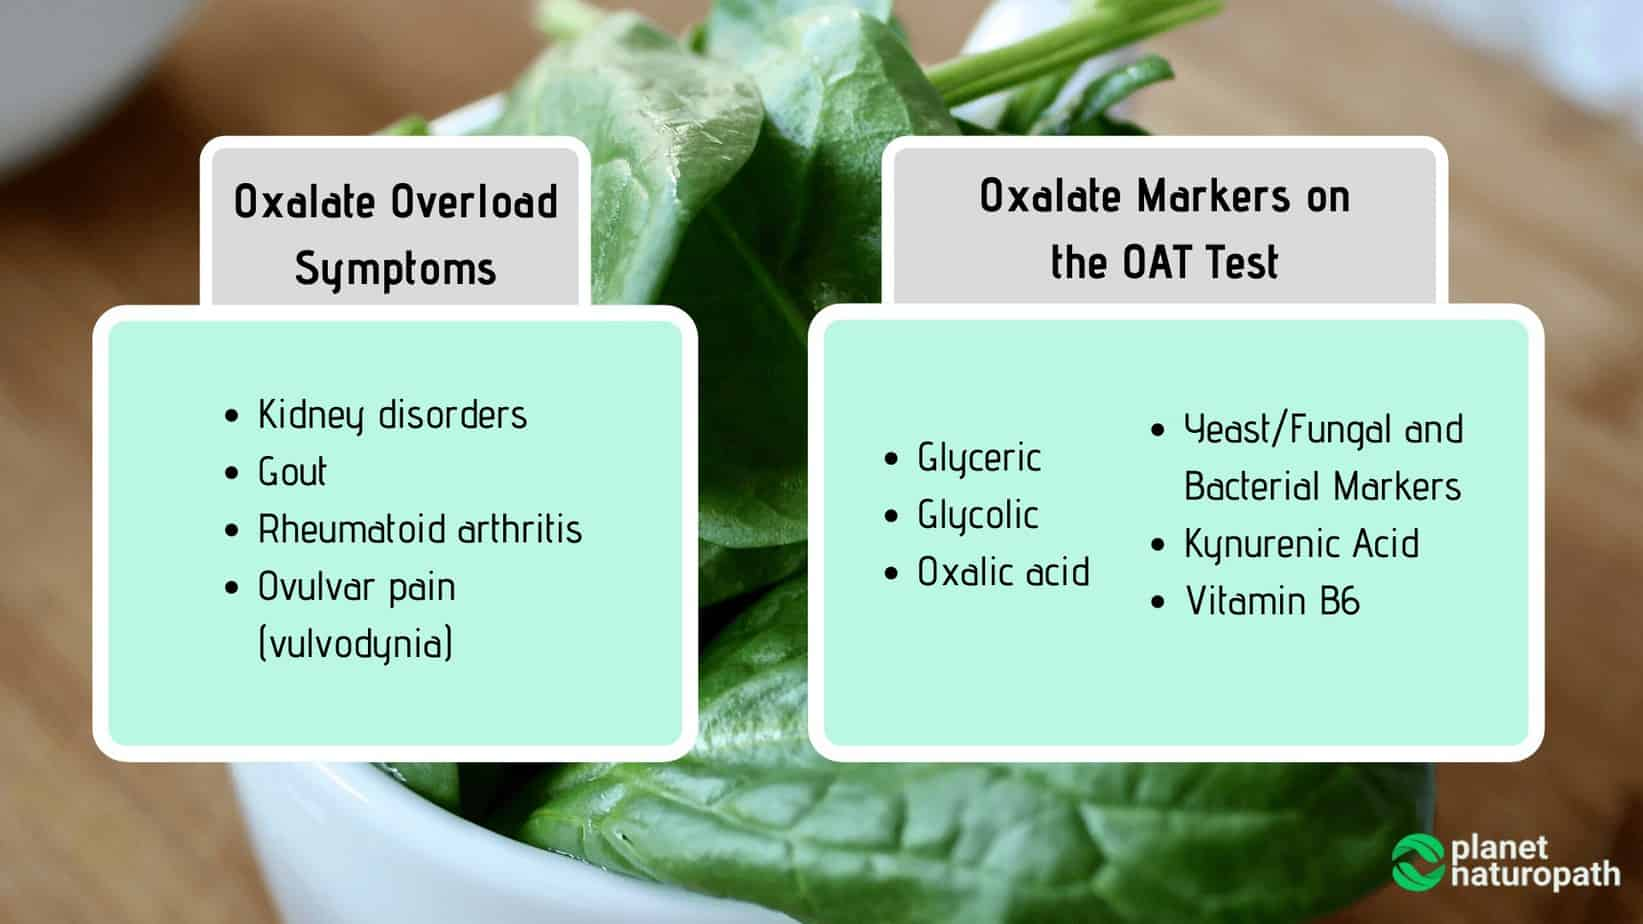 Oxalate-Markers-on-the-OAT-Test.